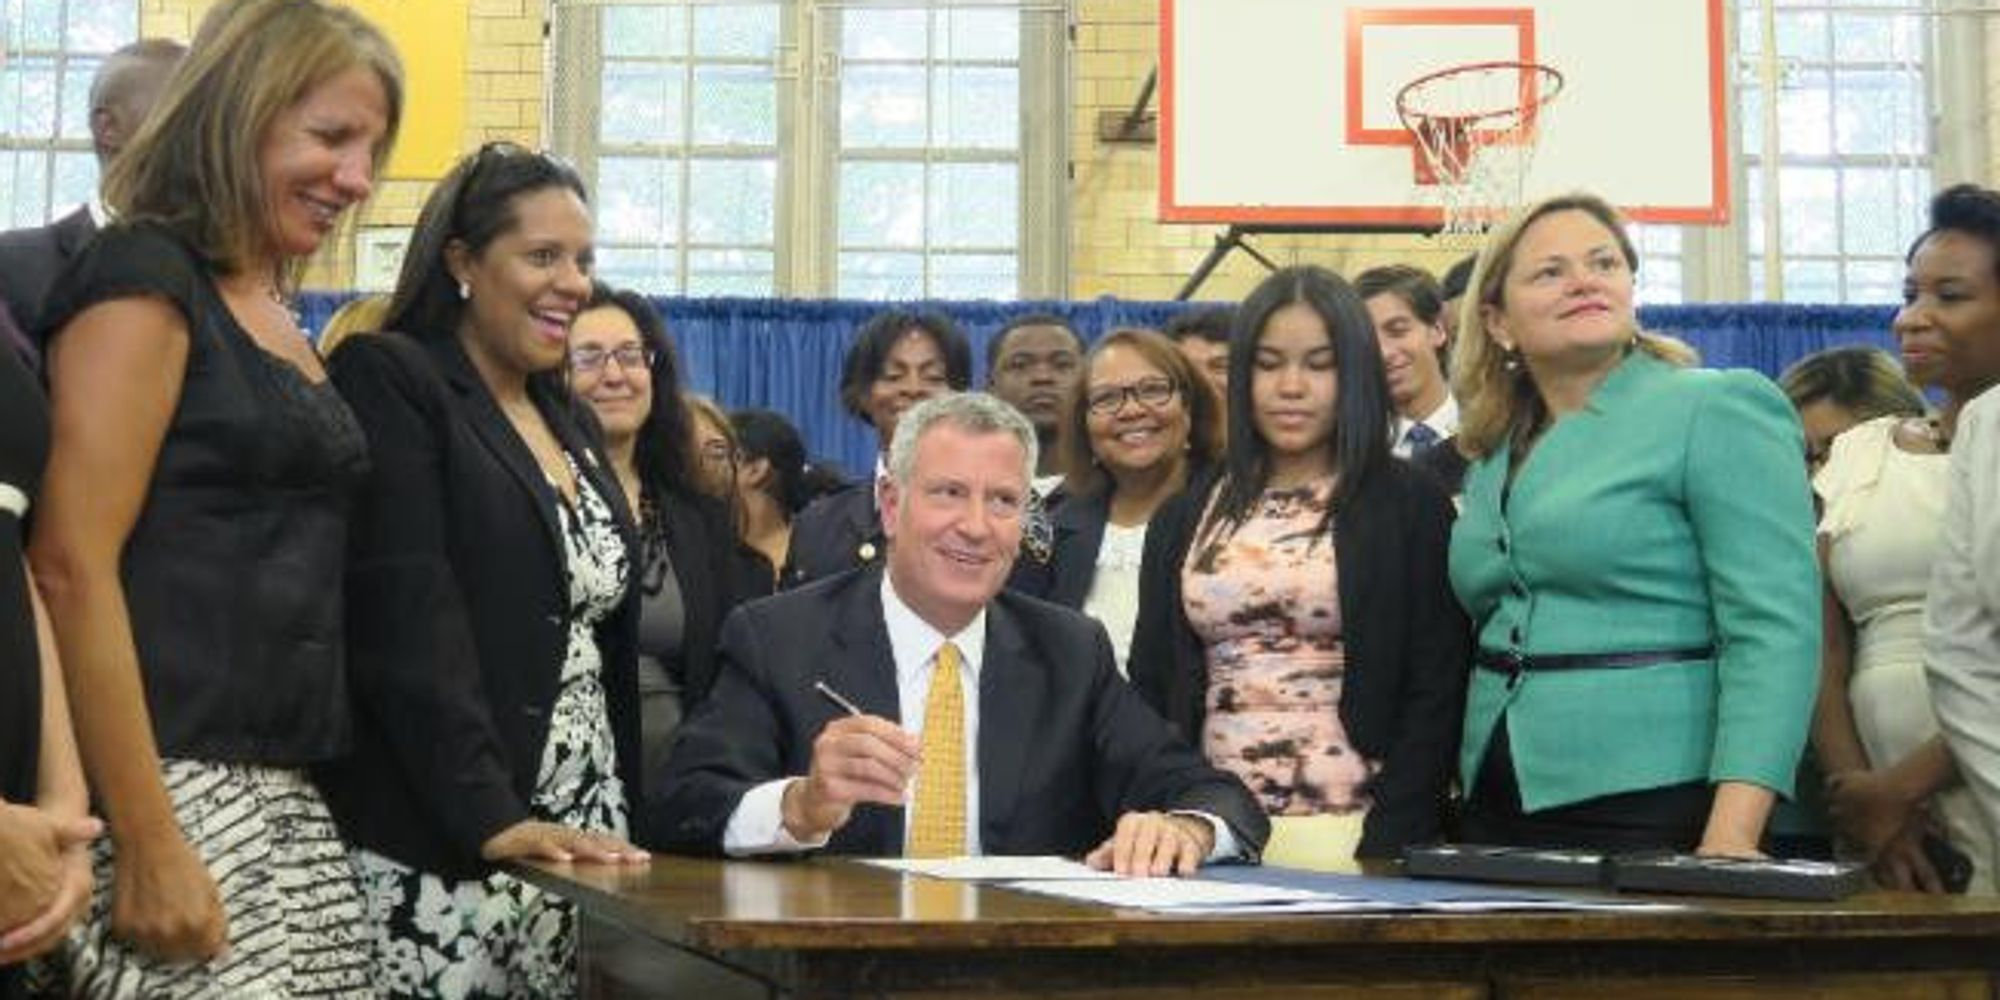 NYC Mayor Signs Free Tampons For Schools, Jails, Shelters Into Law